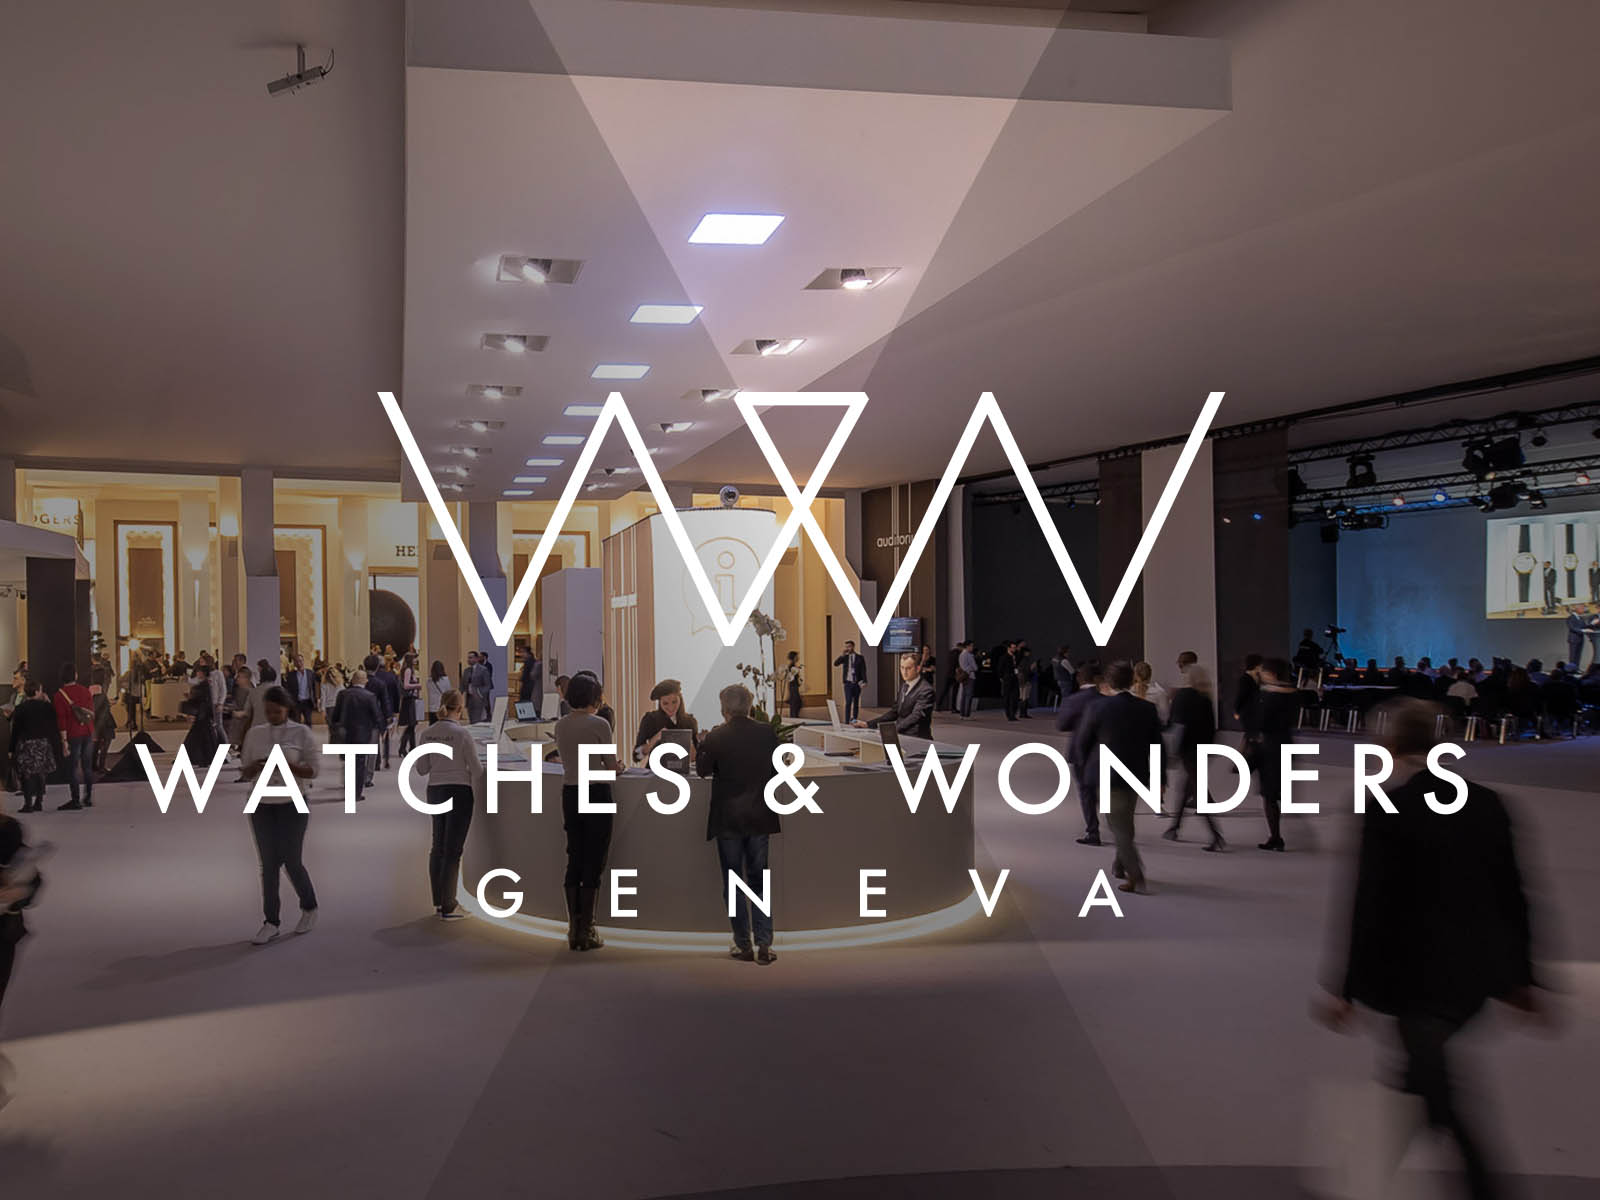 watches-and-wonders-2020-cancelled-2.jpg